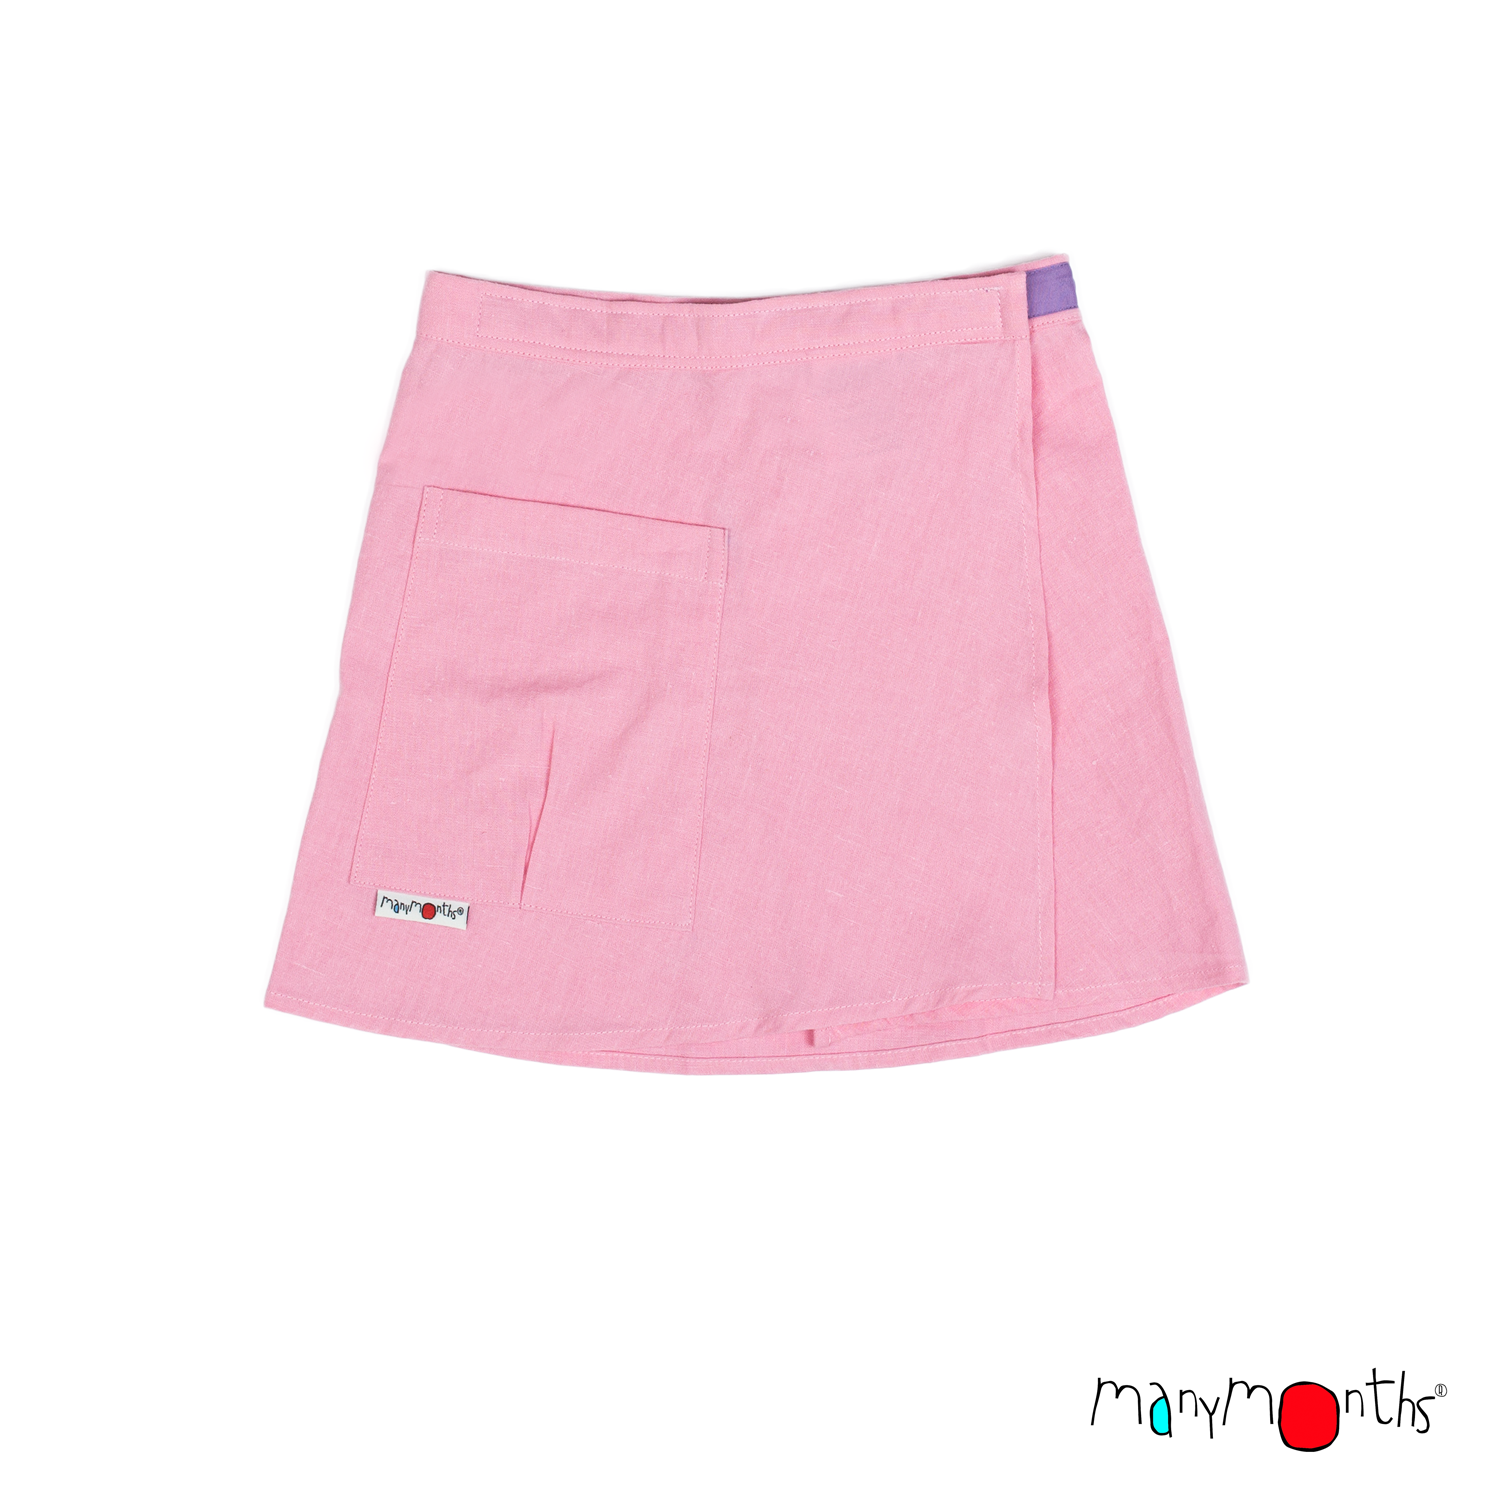 ManyMonths ECO Hempies Wrap Skirt